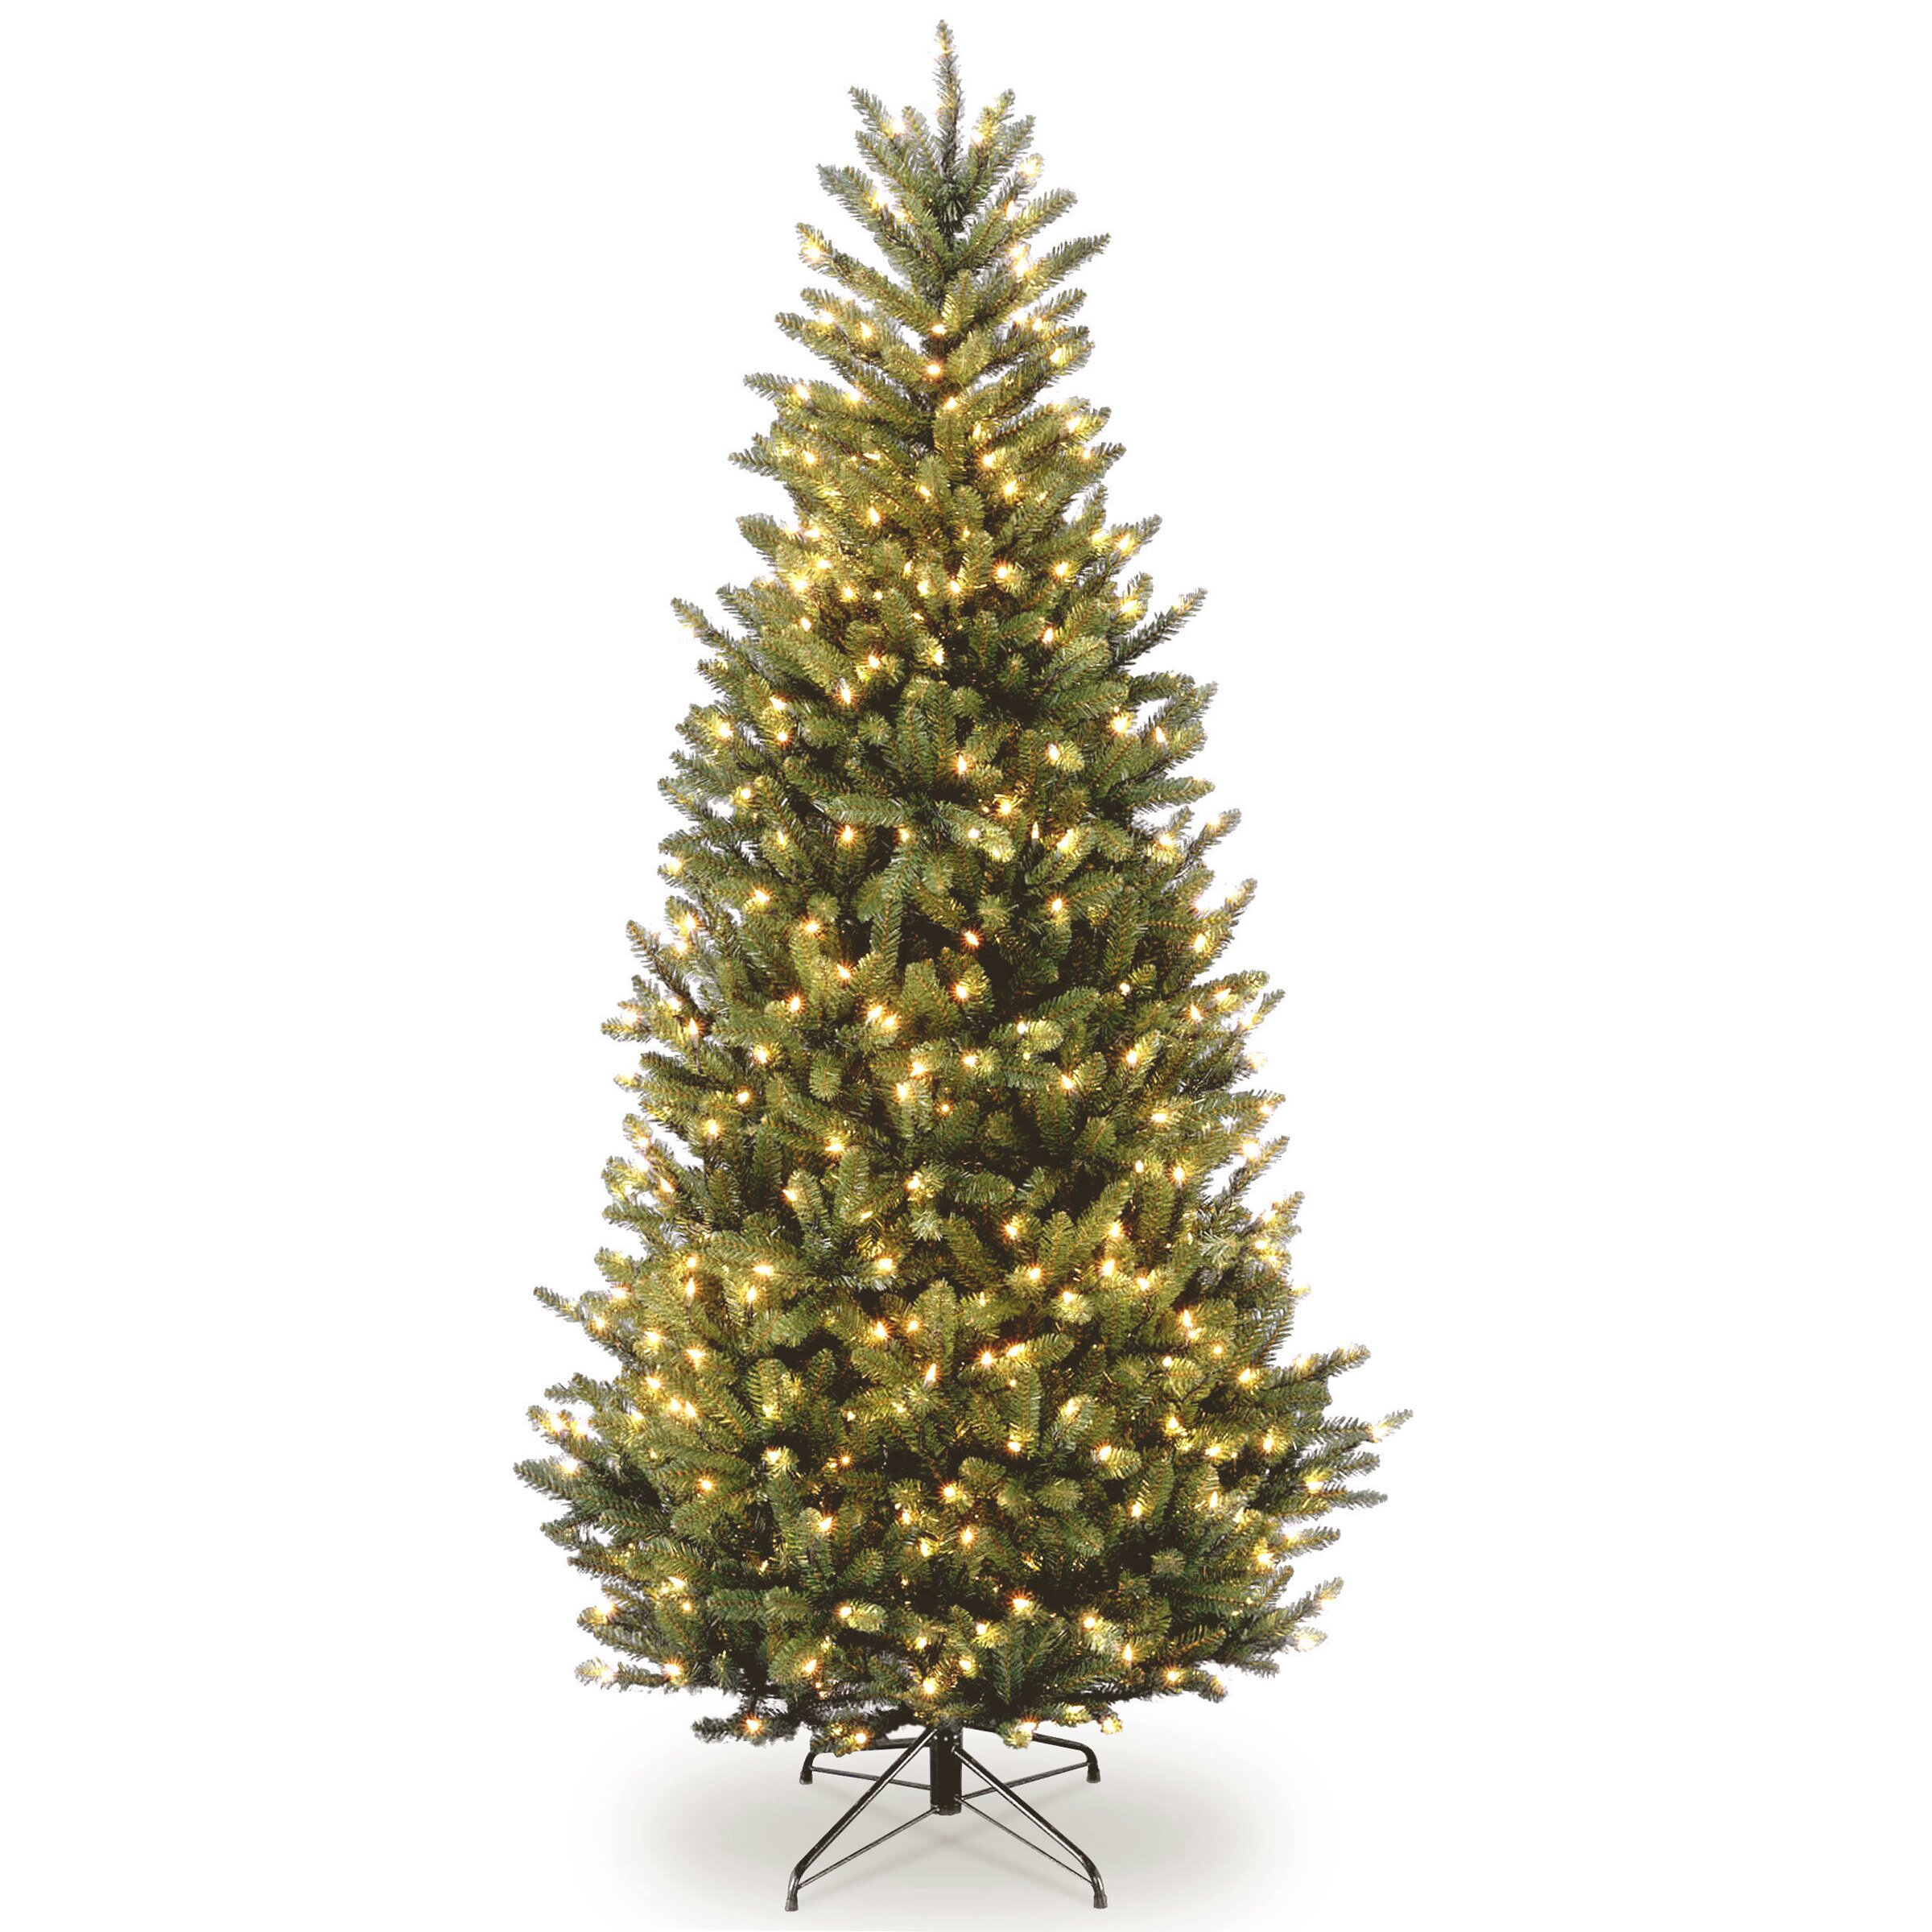 Next Slim Christmas Tree: 7.5' Natural Fraser Slim Fir Hinged Tree With 600 Clear